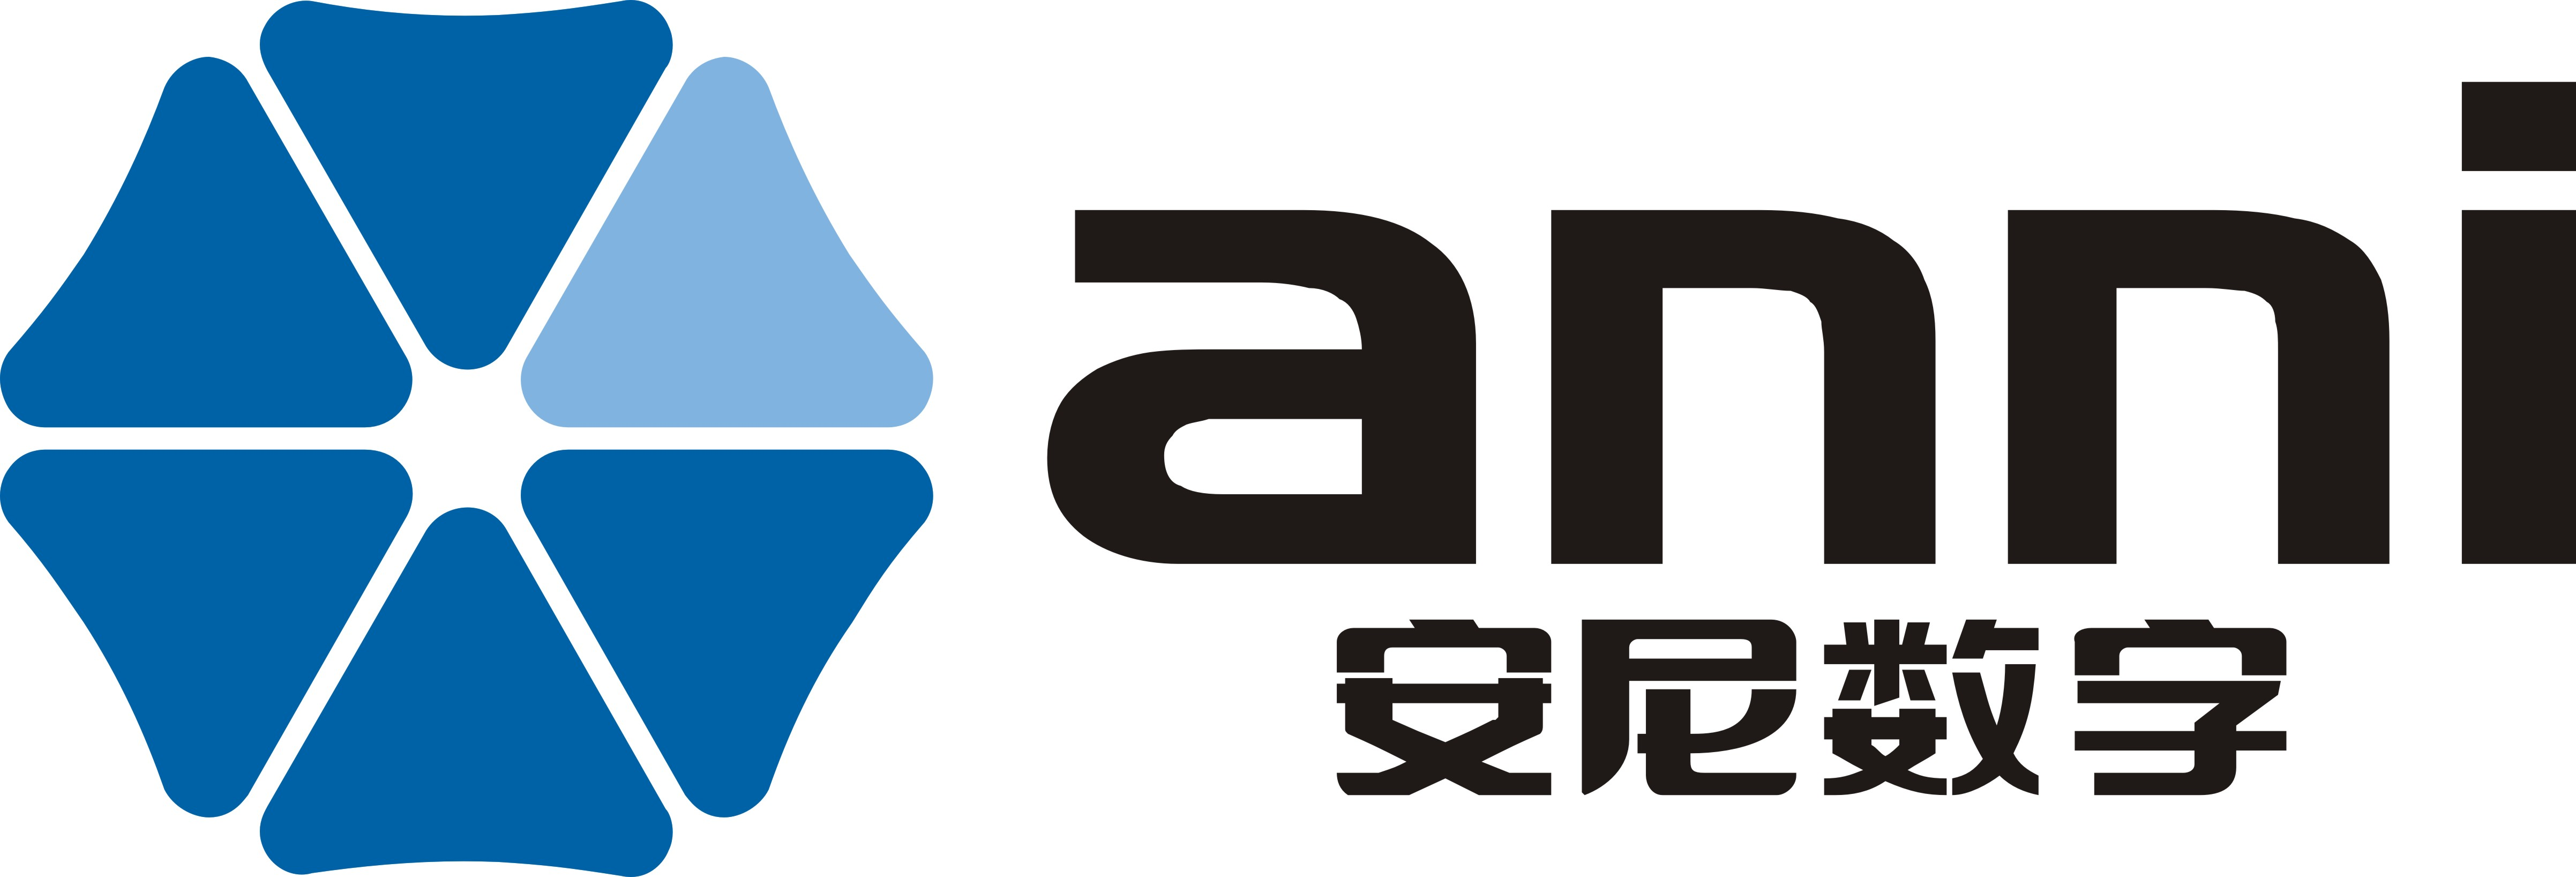 Shenzhen Annidigital Technology Co. Ltd.